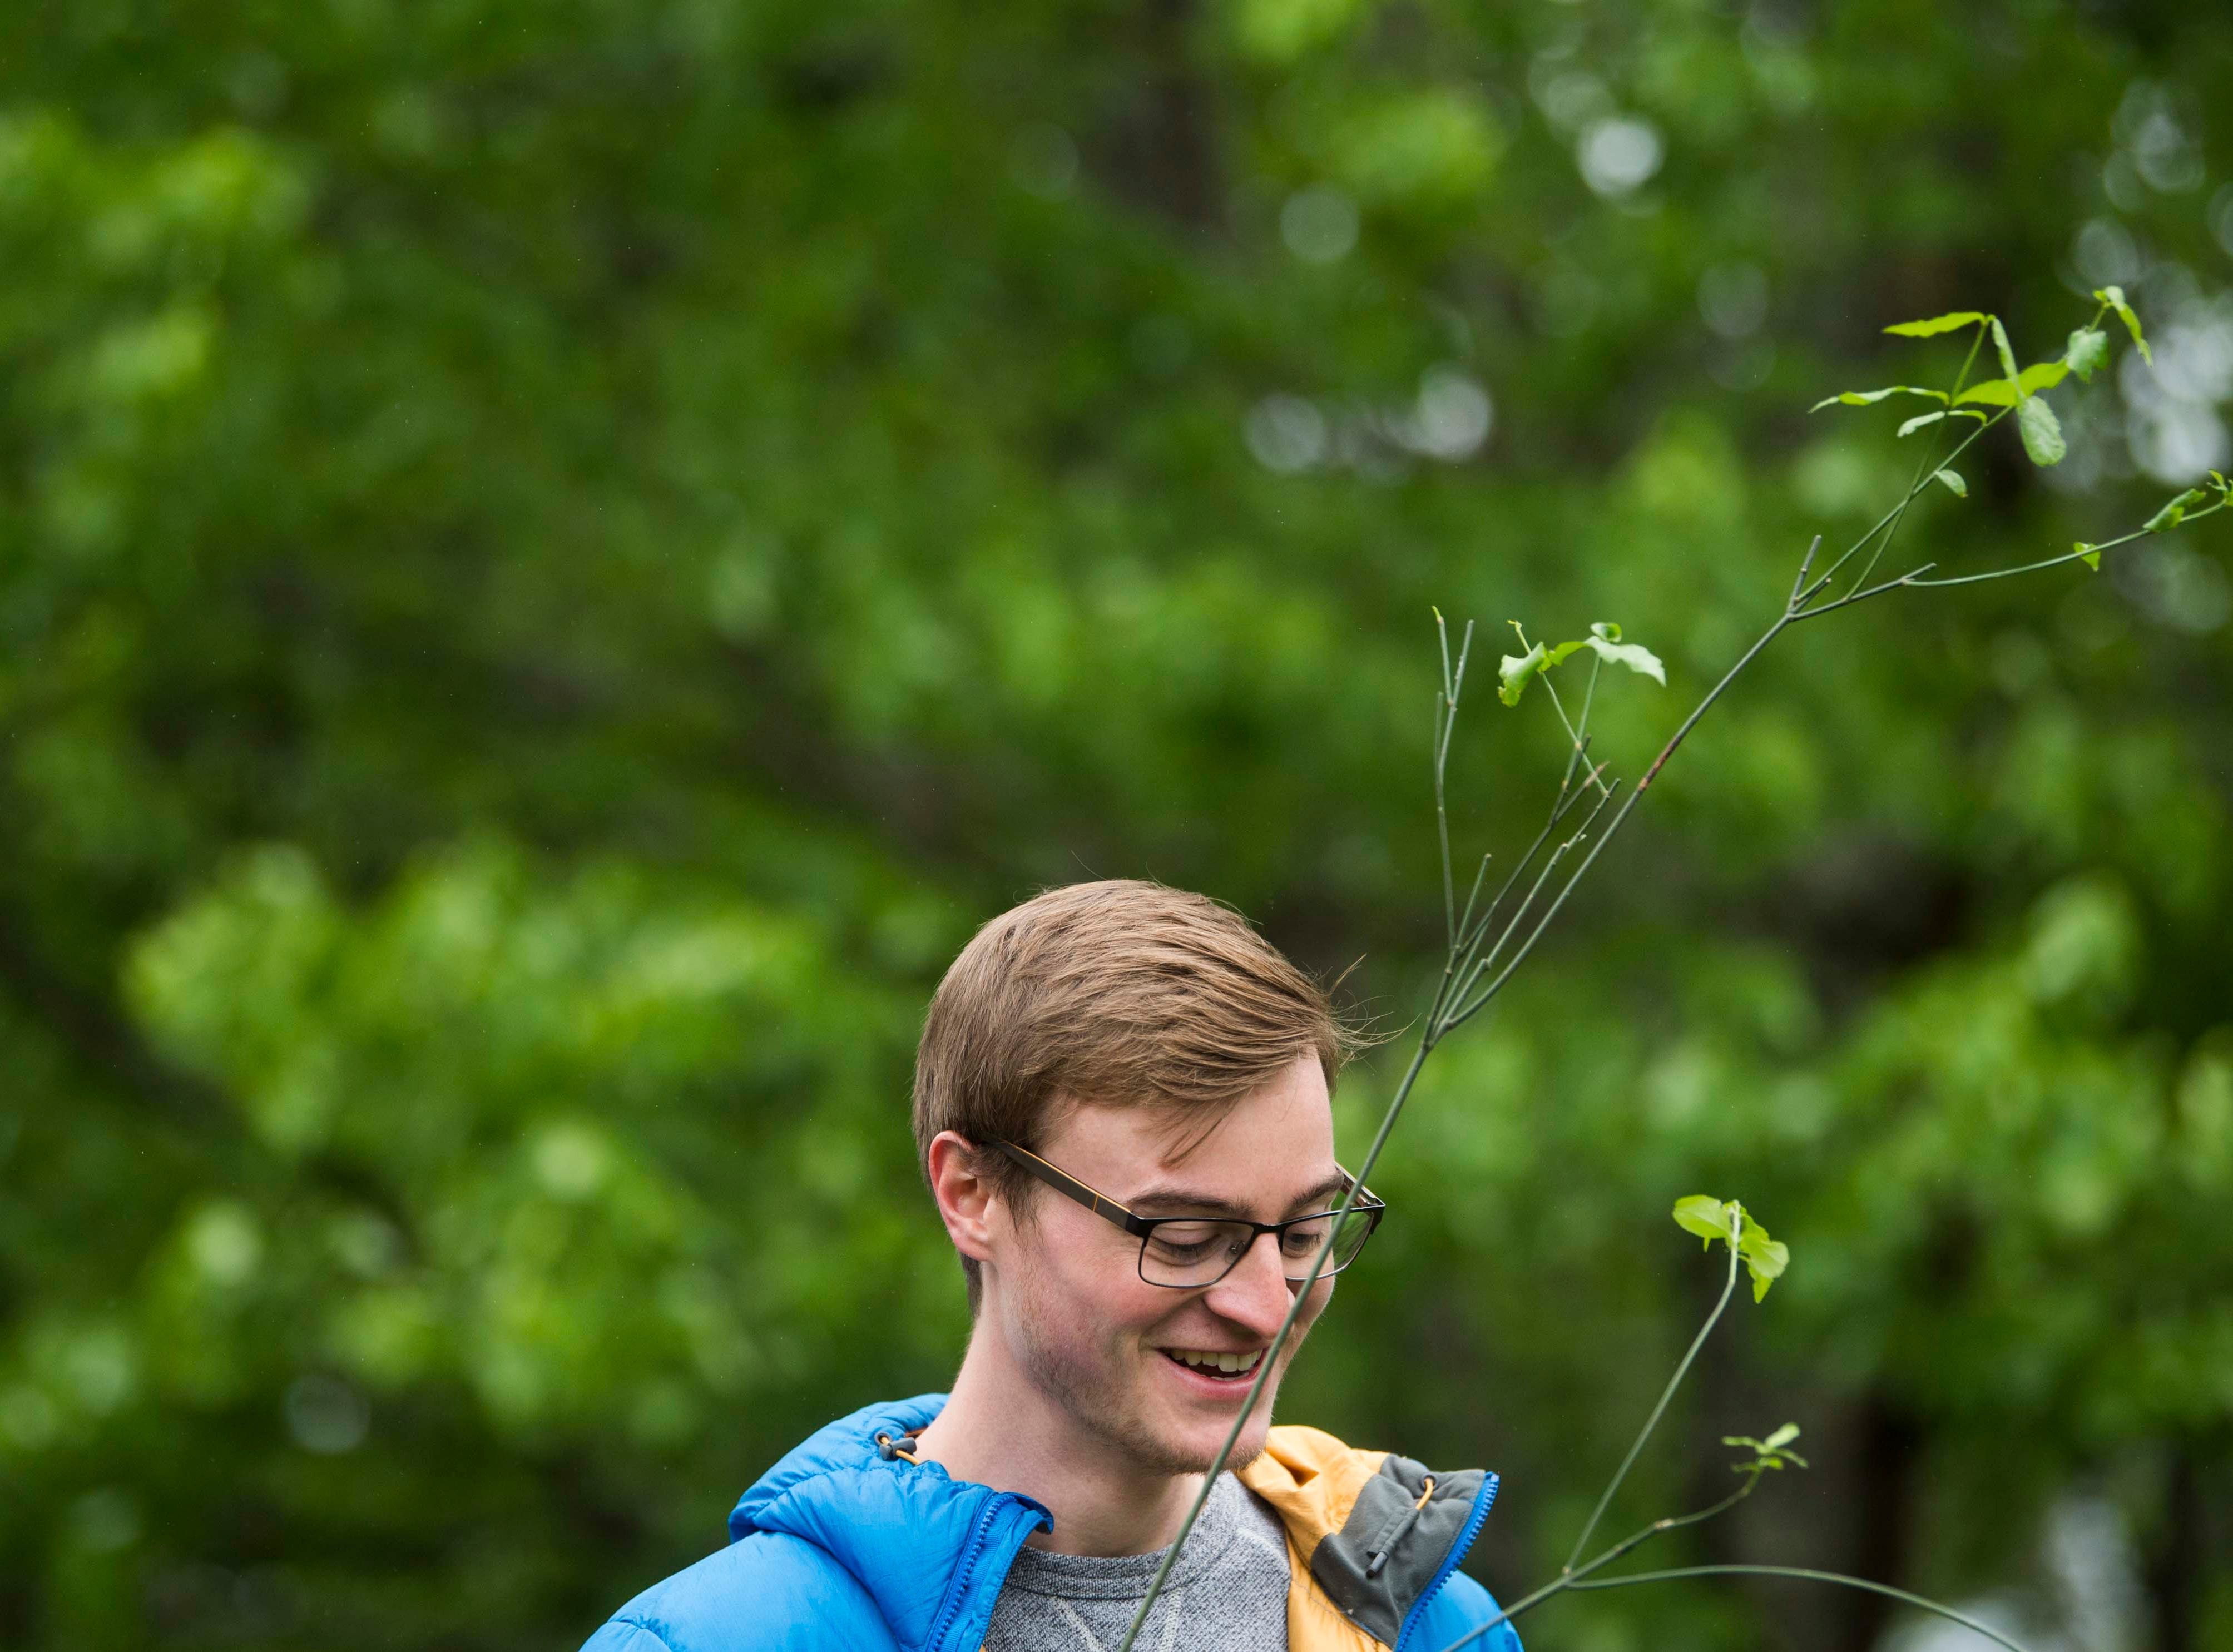 UT grad student Jonathan Cox, of Knoxville, holds onto a plant at Earthfest 2019 at the Knoxville Botanical Gardens in East Knoxville, Saturday, April 20, 2019.